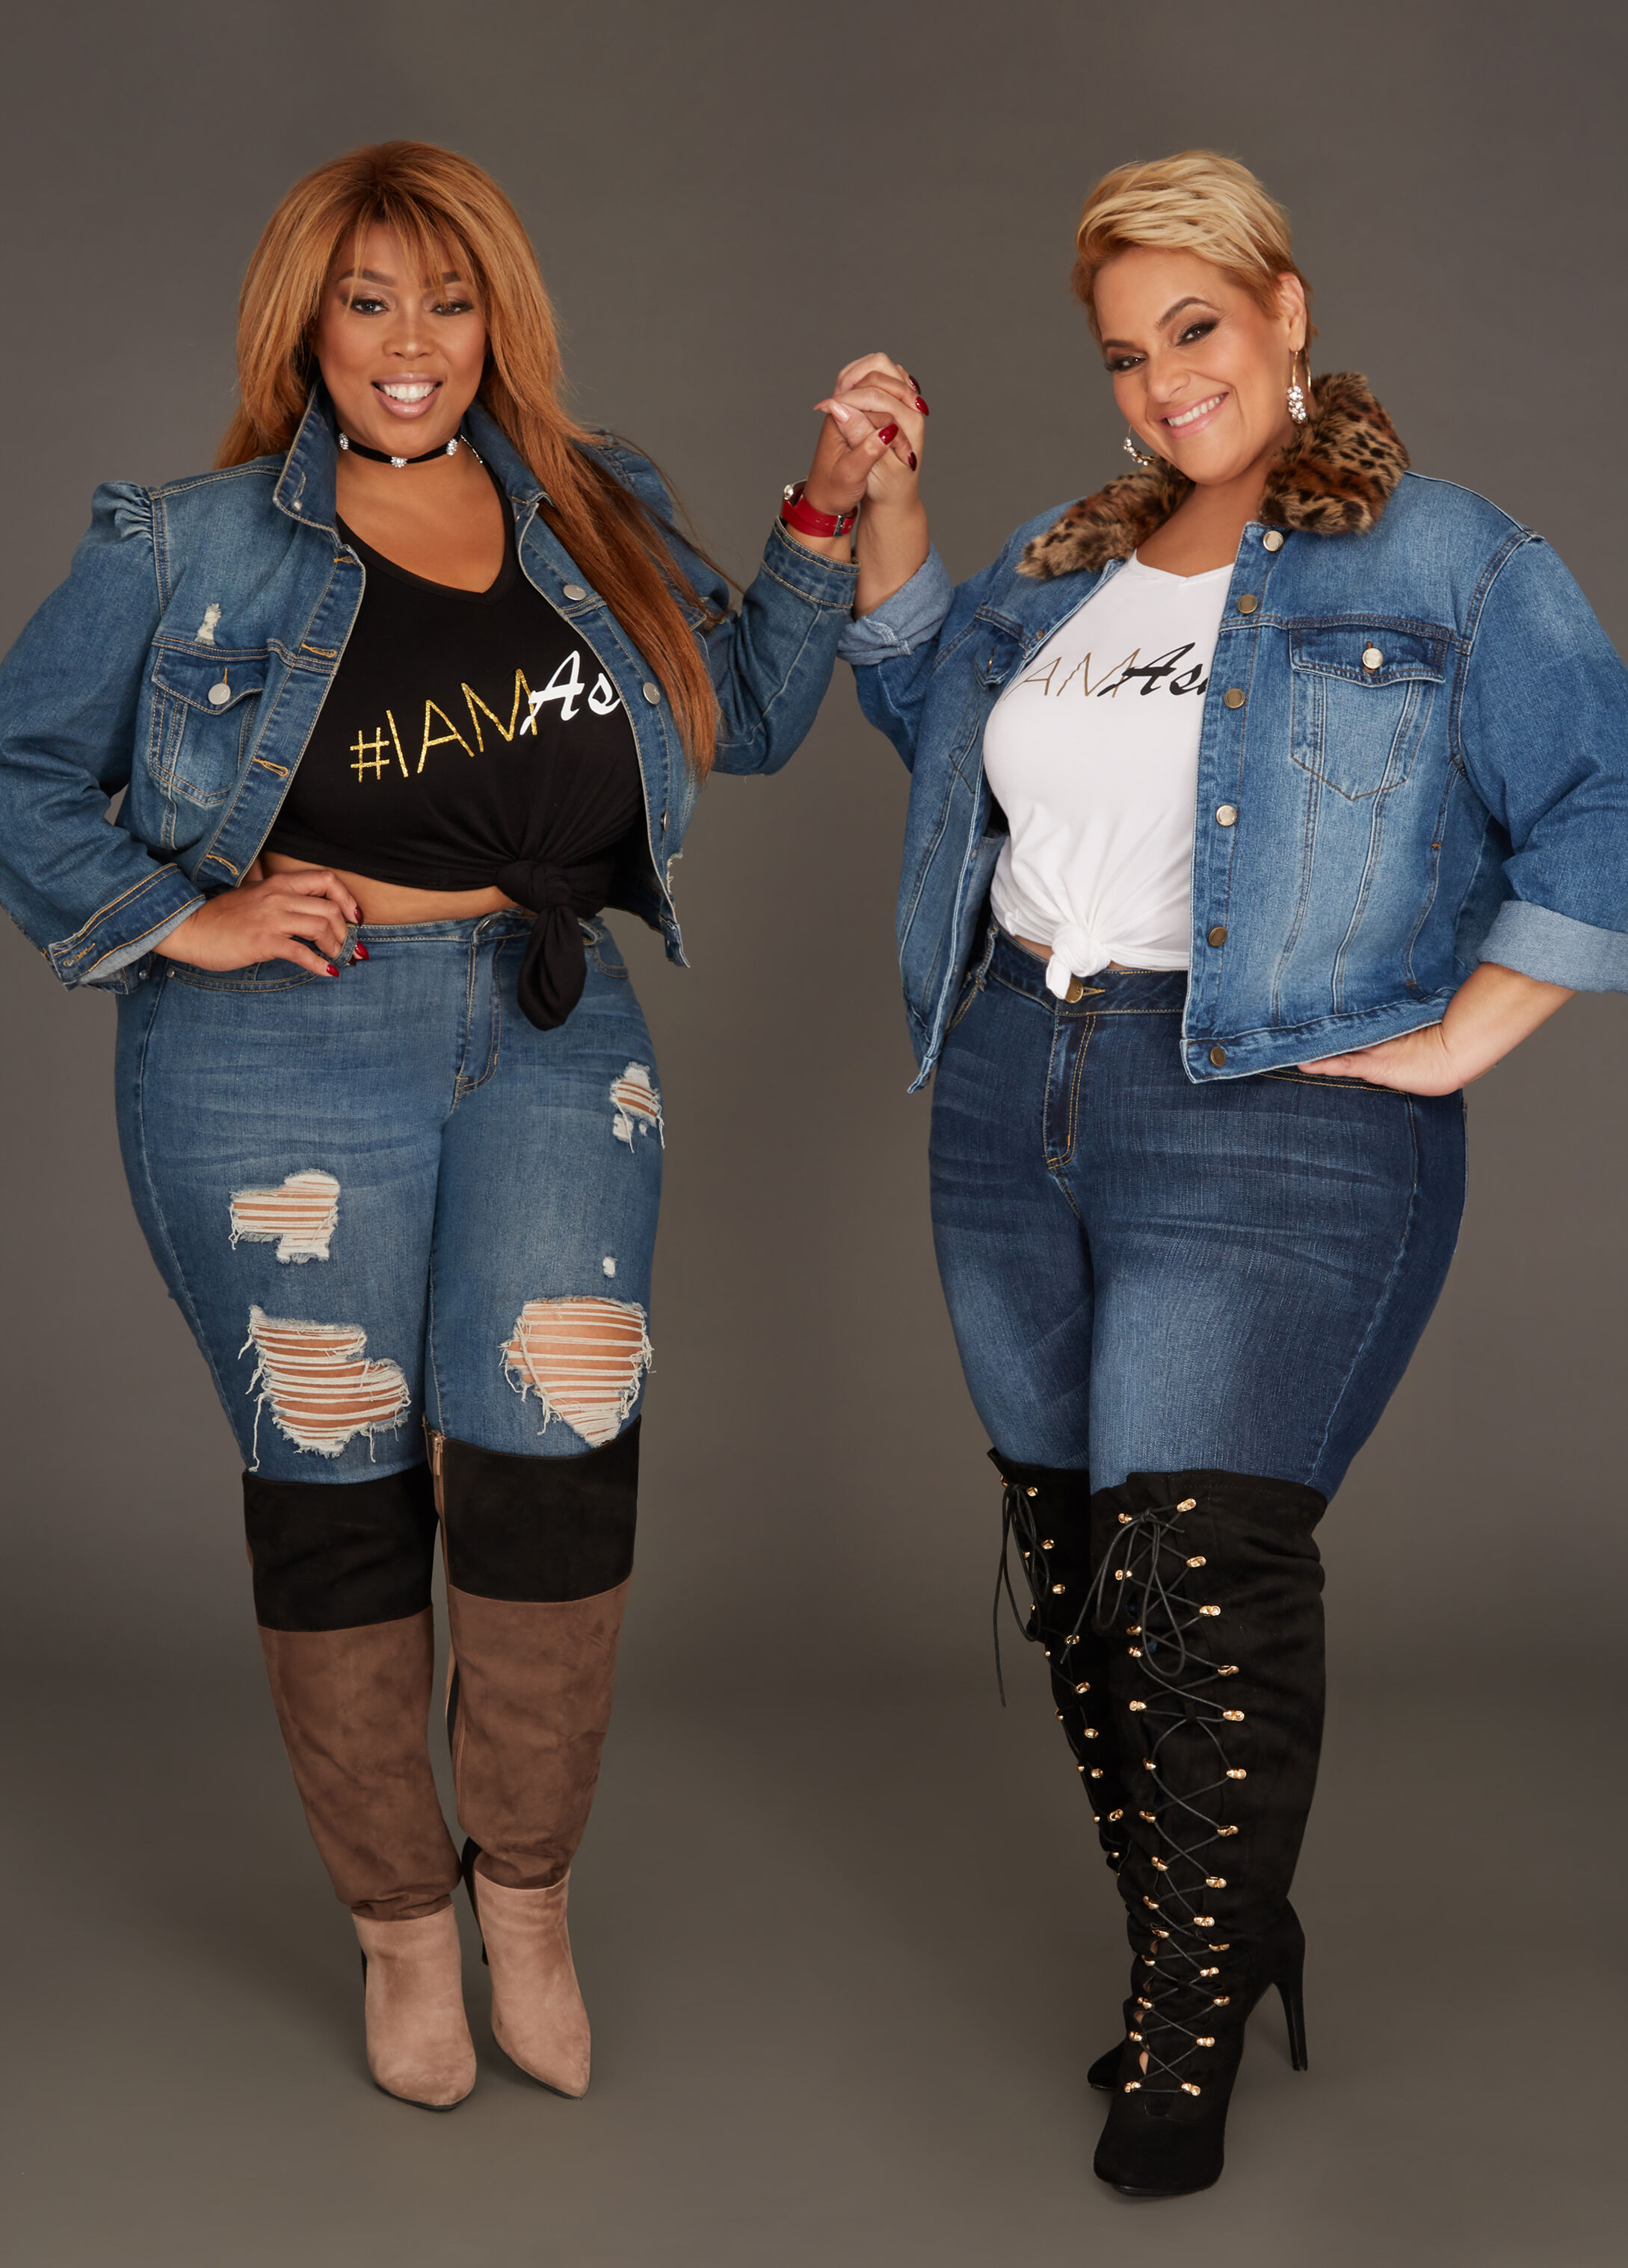 Plus Size Outfits - Besties_11-8-17